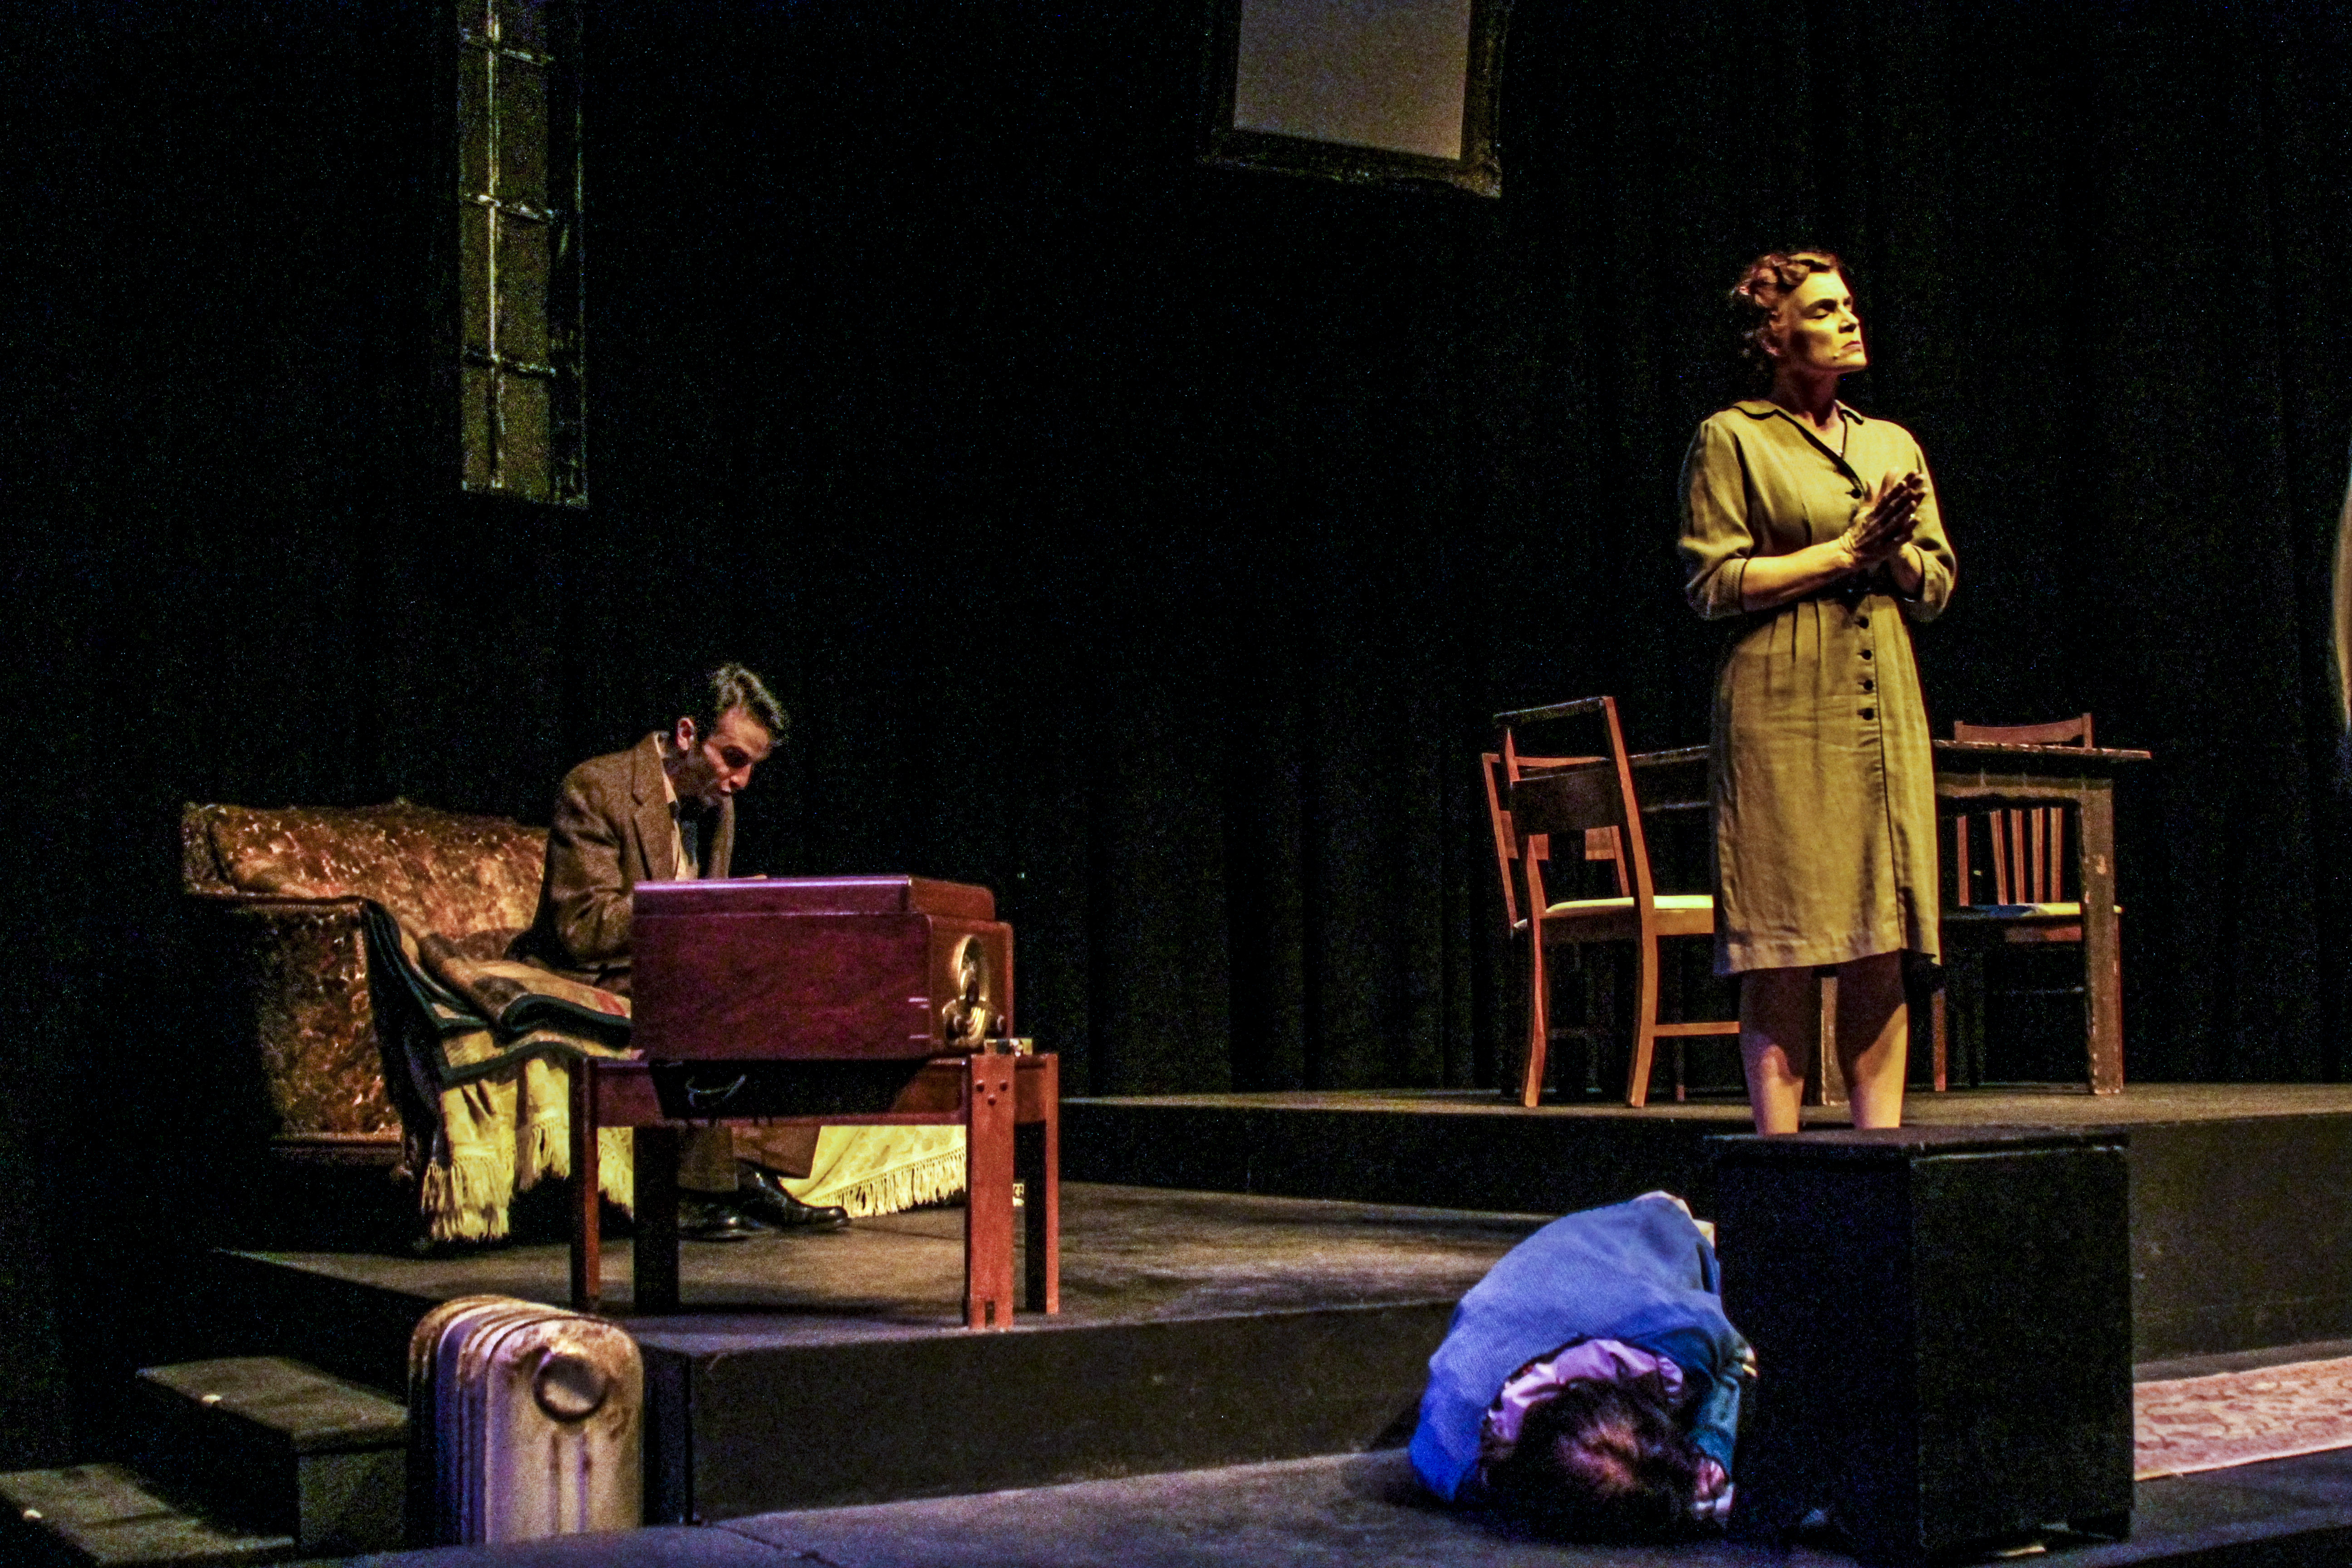 """Laura Wingfield (bottom right, performed by Abby Fields) huddles on the gorund while herover bearing mother Amanda (far right, performed by Heidi Bridges) argues with her son Tom about his nightly escapades to """"the movies,"""" in the performance ofThe Glass Menagerie by Tennessee Williams at Palomar College. Lucas Spenser/Telescope."""